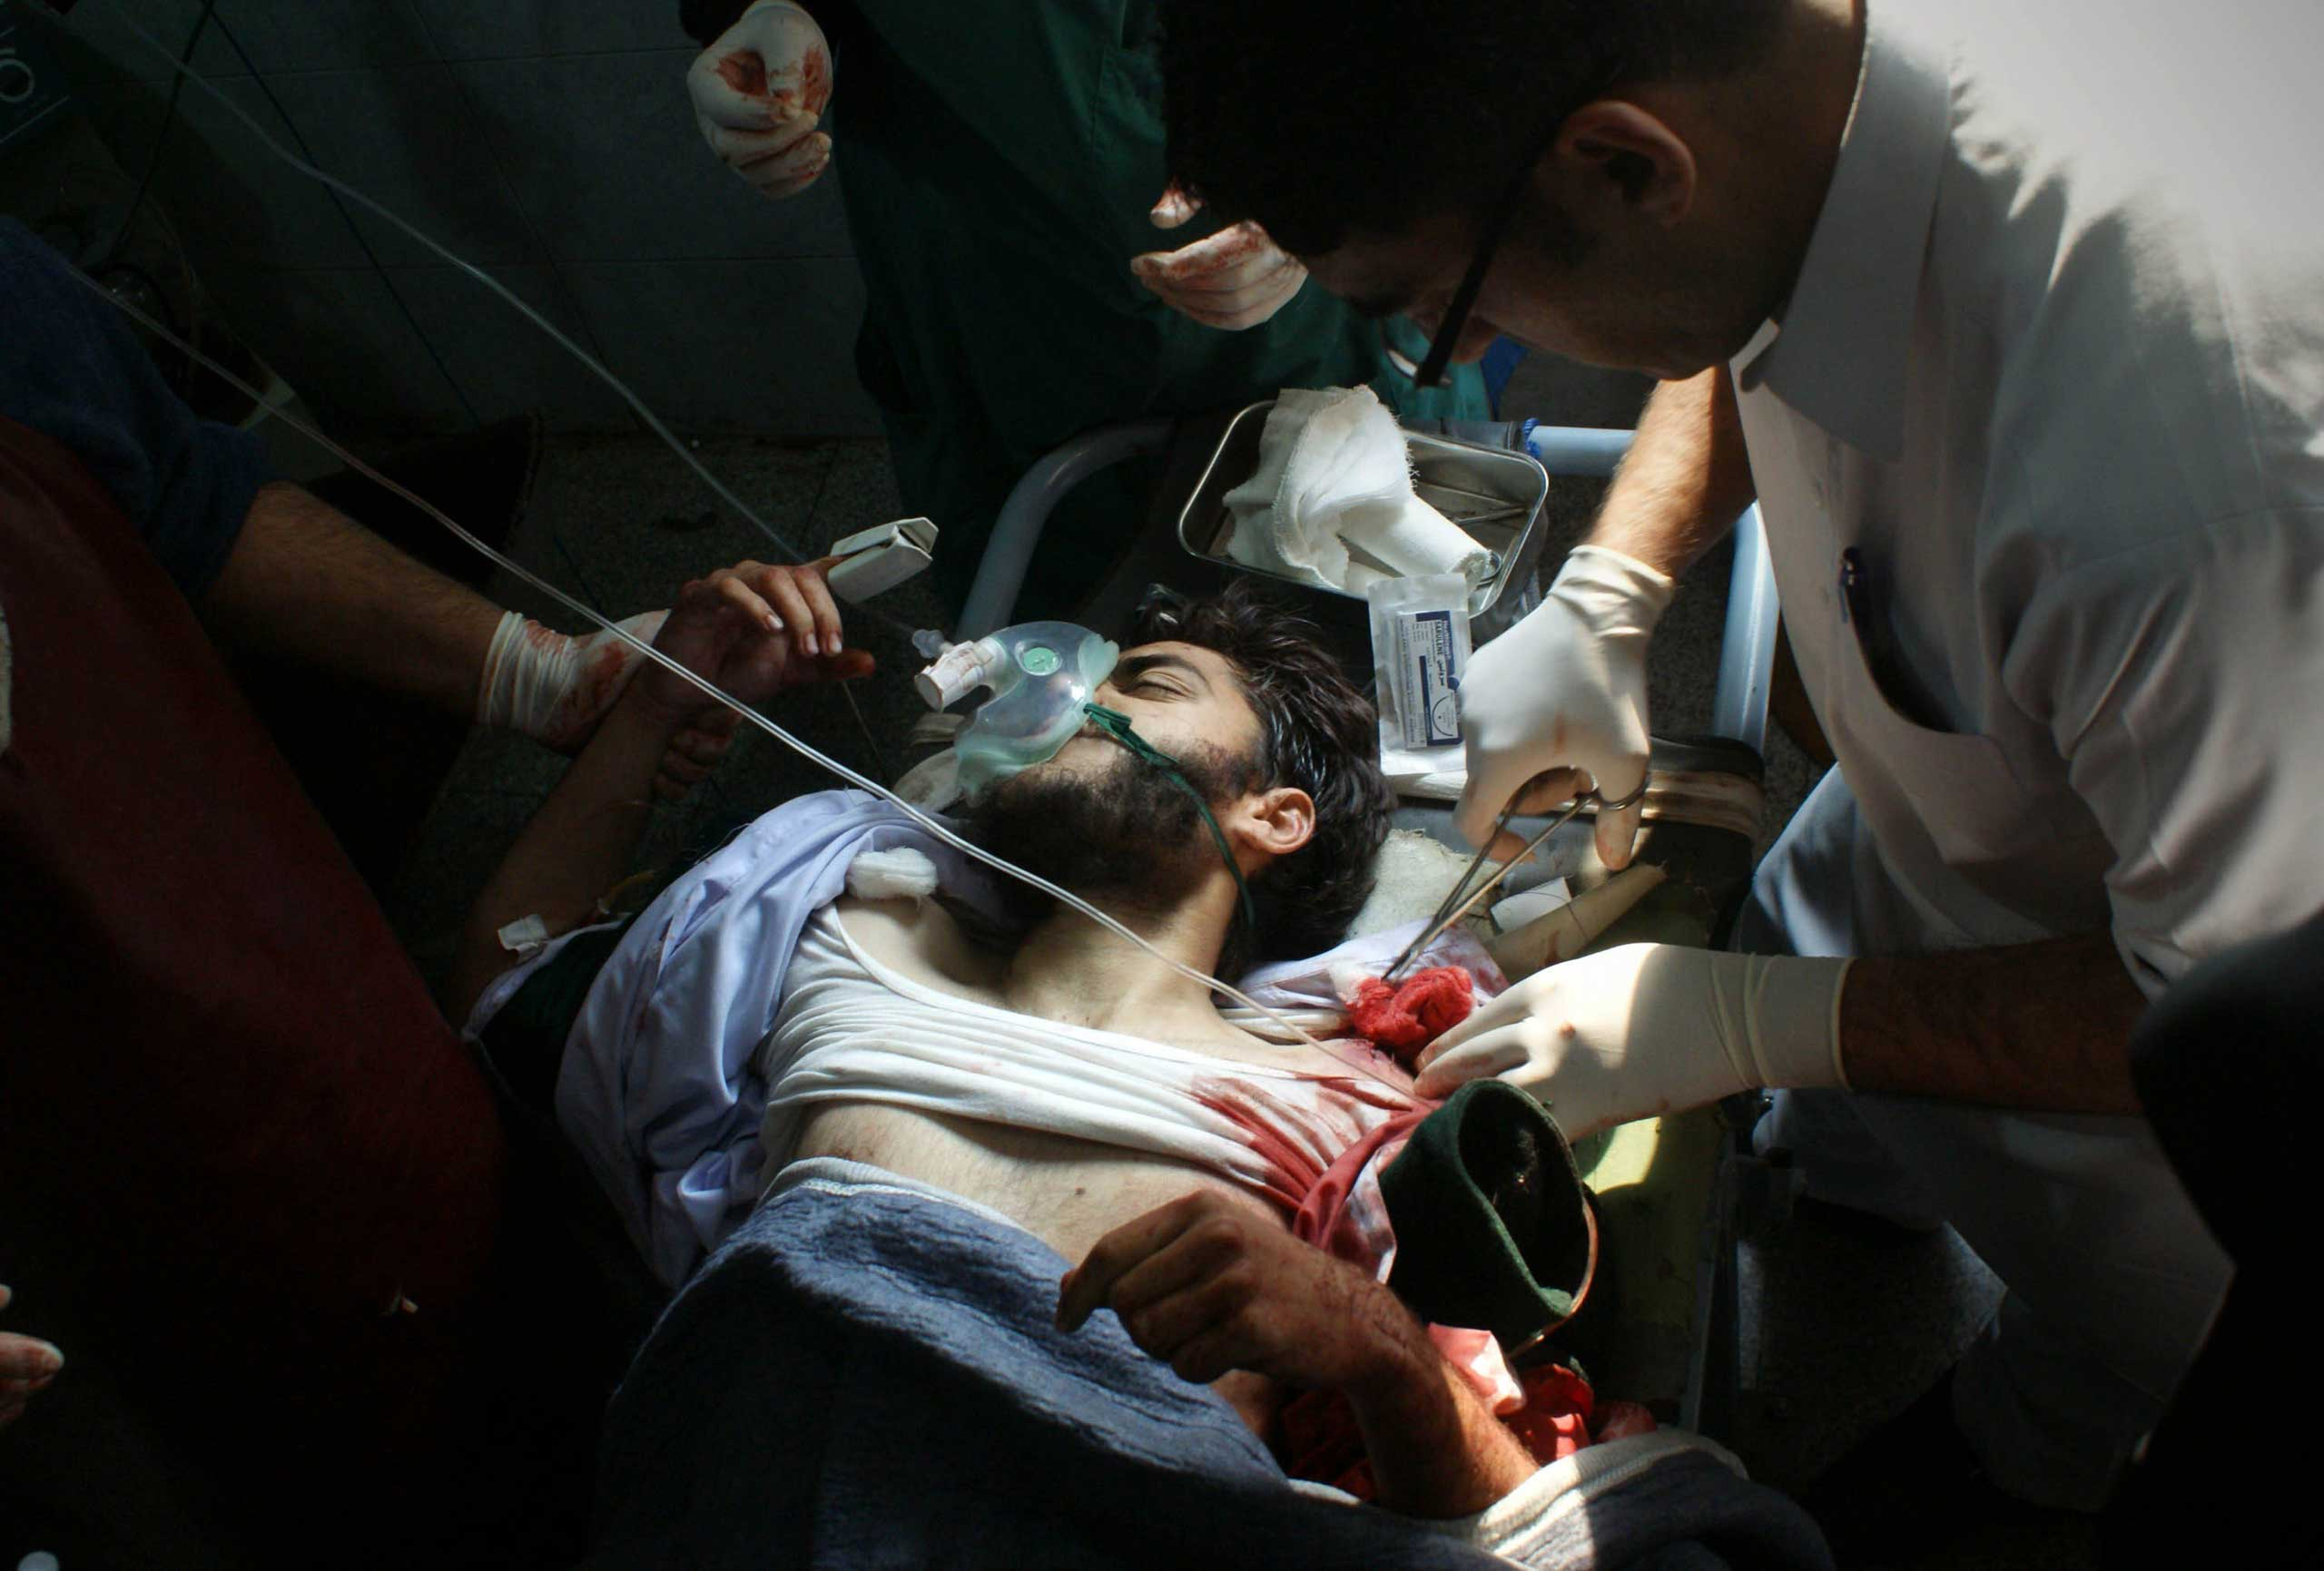 A wounded Pakistani student receives treatment at a hospital following an attack by Taliban gunmen on a school in Peshawar, on Dec. 16, 2014.